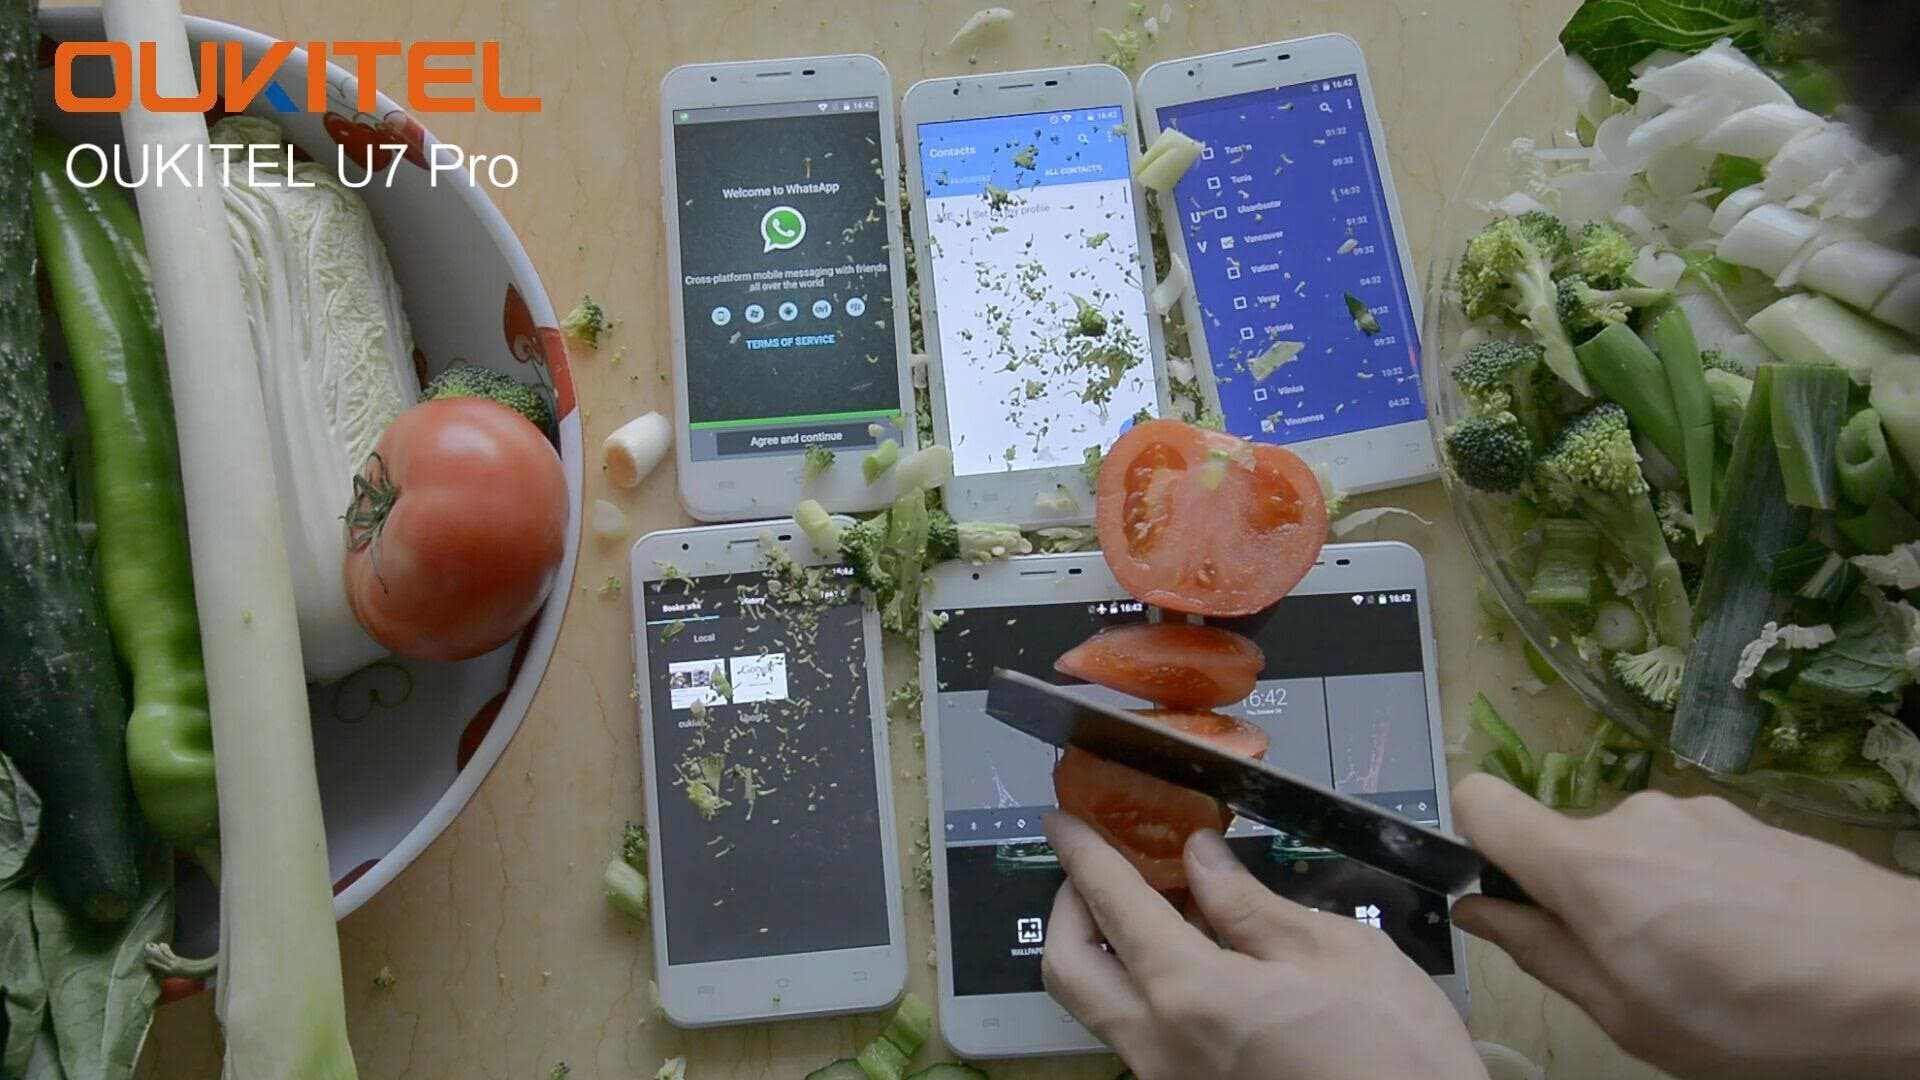 oukitel kitchen